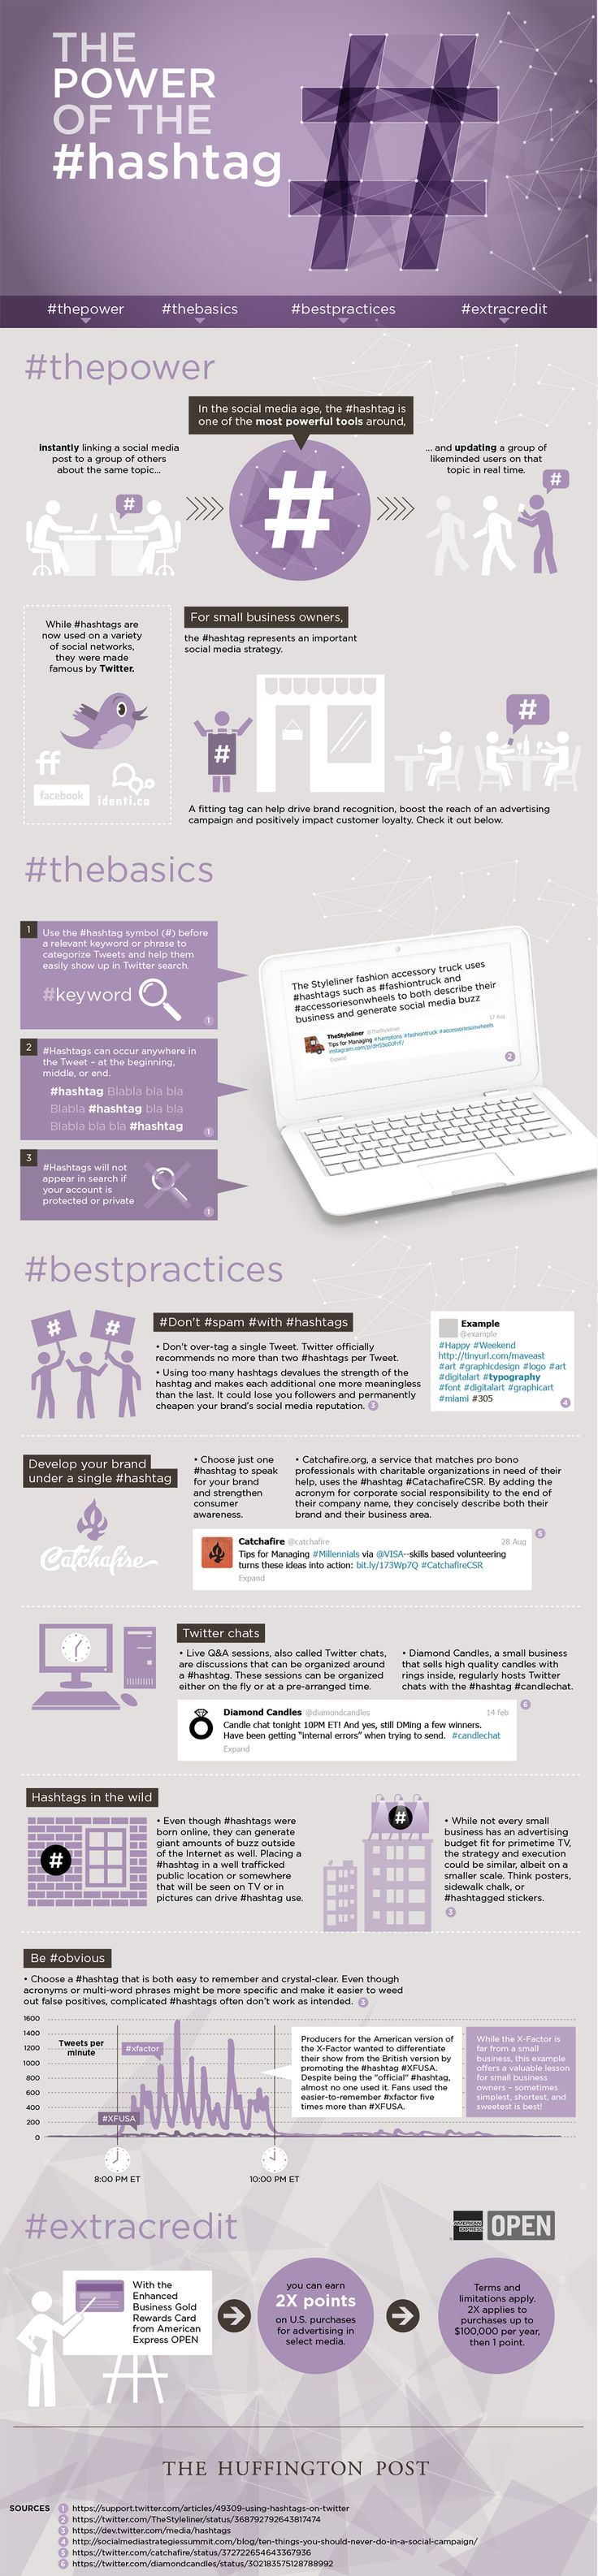 Social Media For Small Businesses: How To Harness The Power of The Hashtag. #infographic #socialmedia